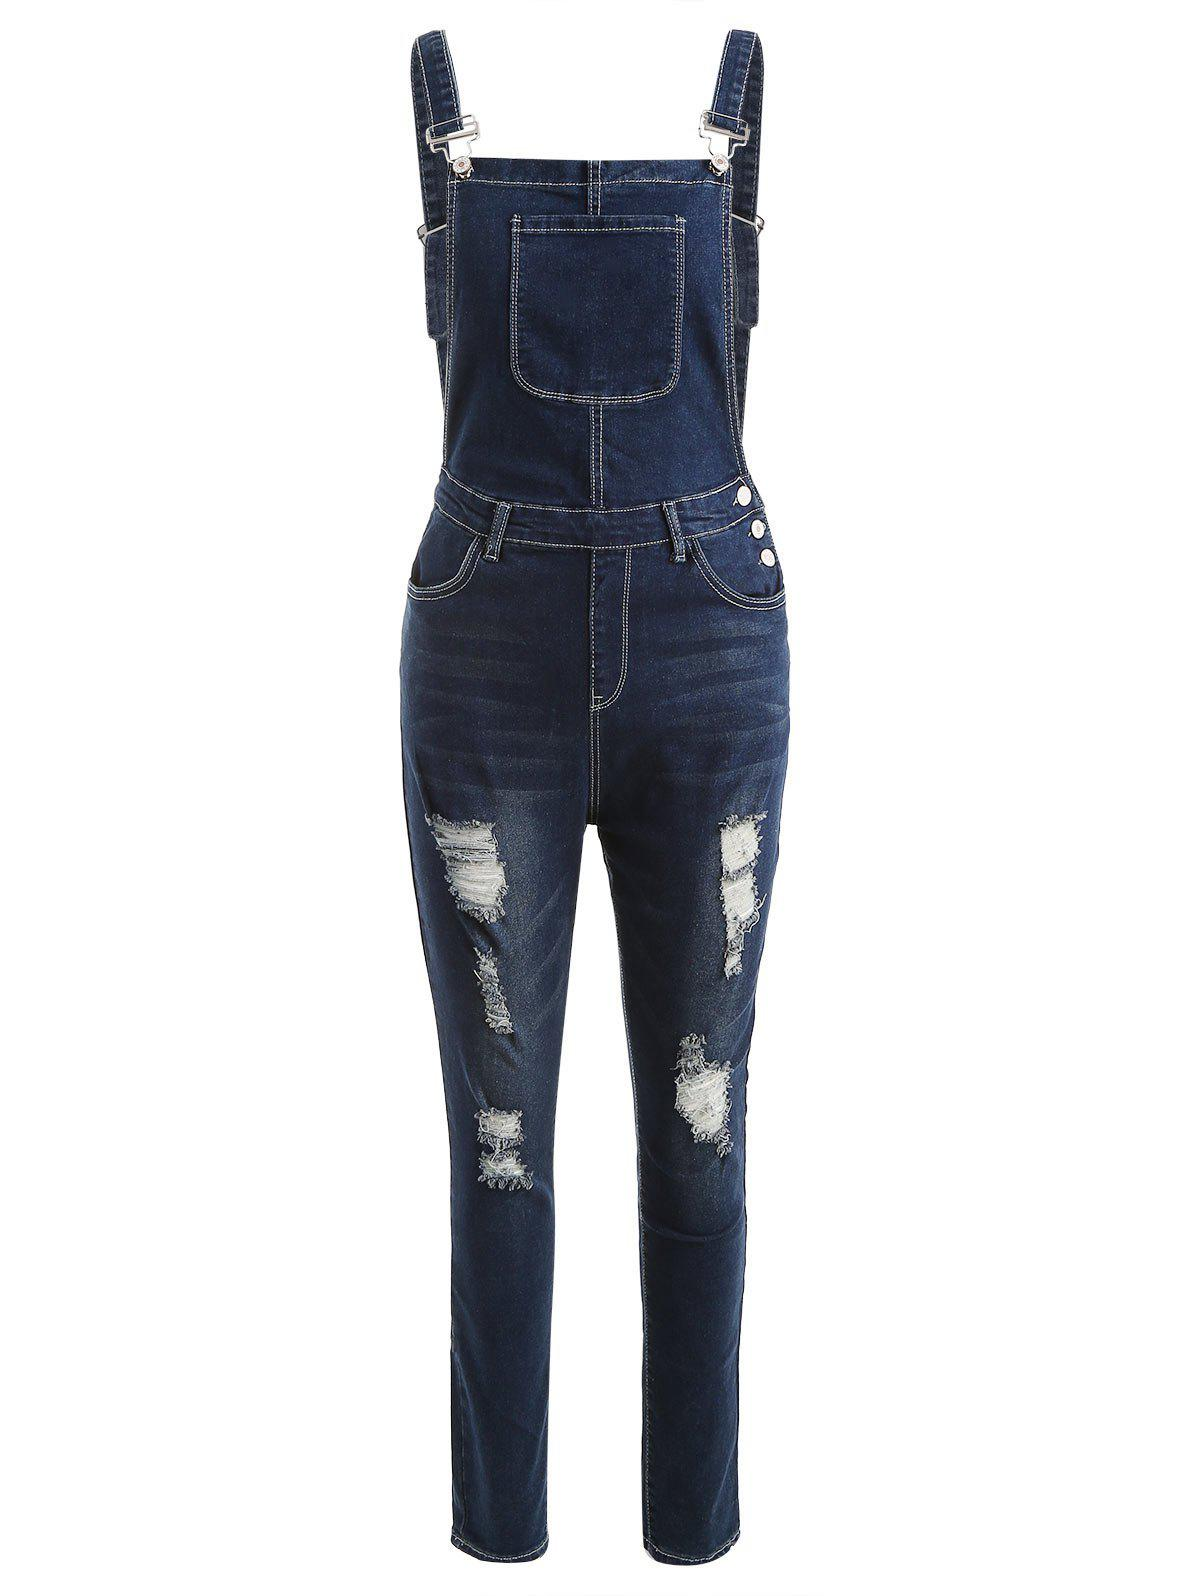 Shop Ripped Denim Suspender Pants